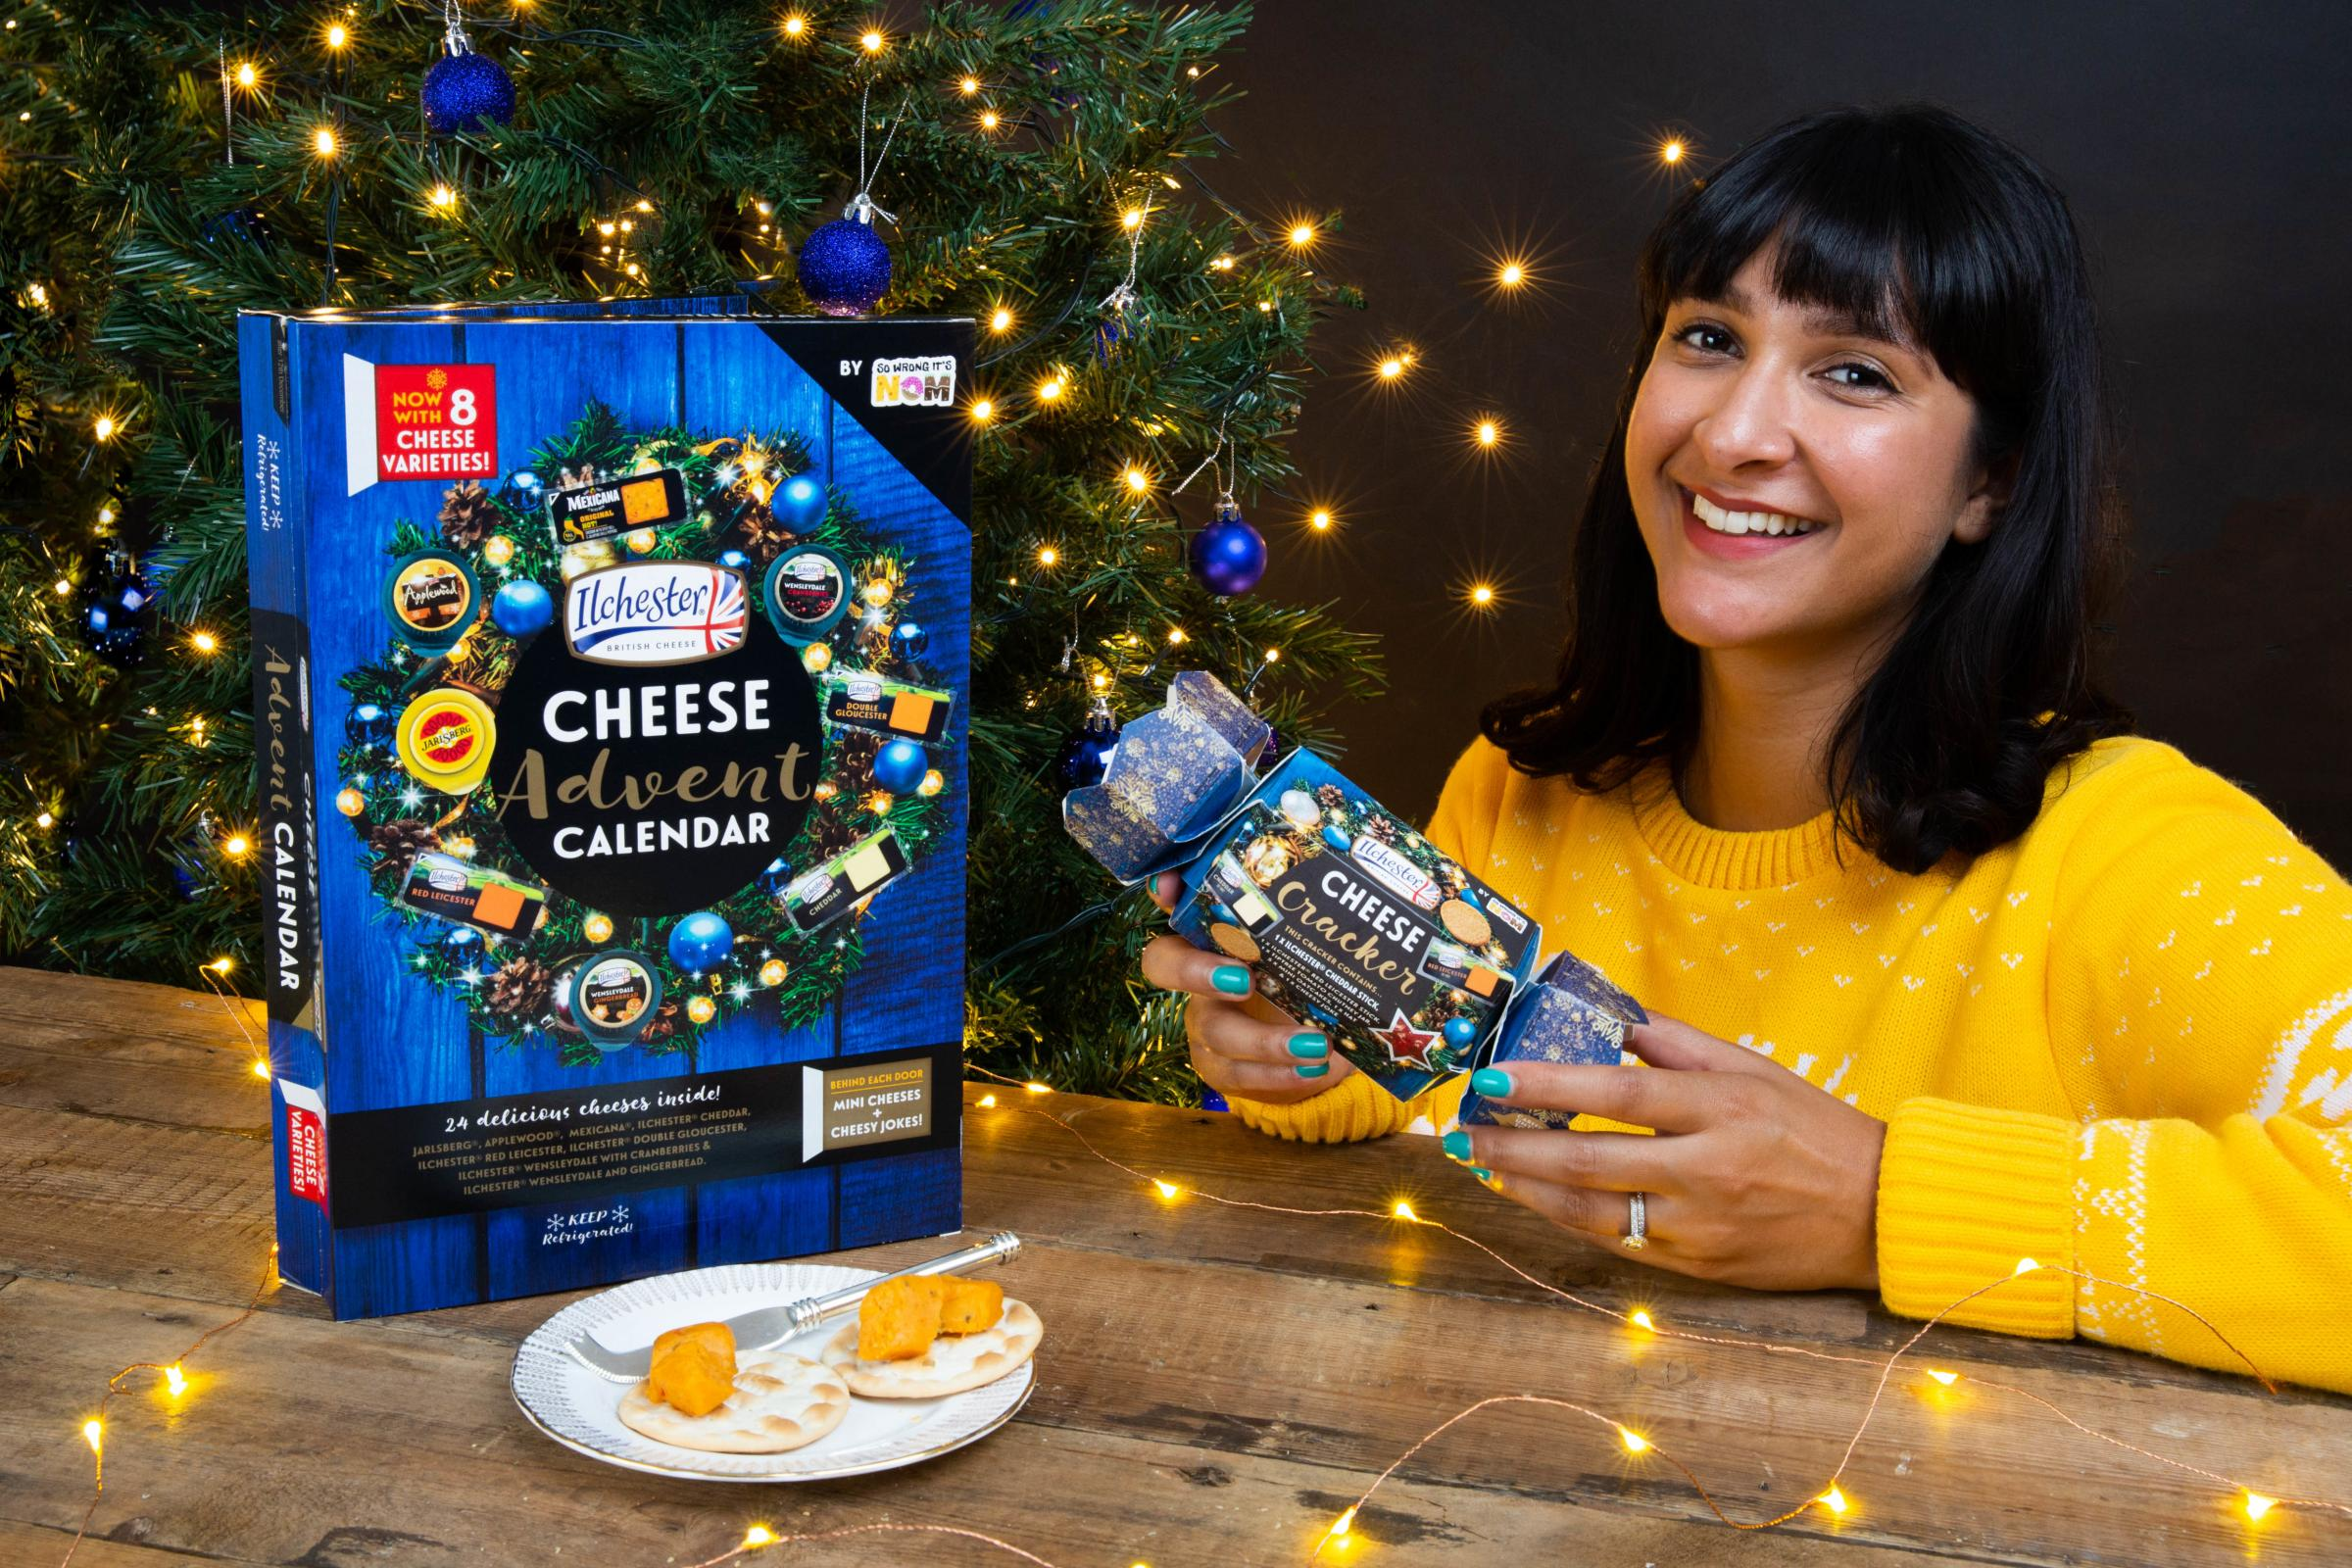 Cheese advent calendar will return to supermarkets this November